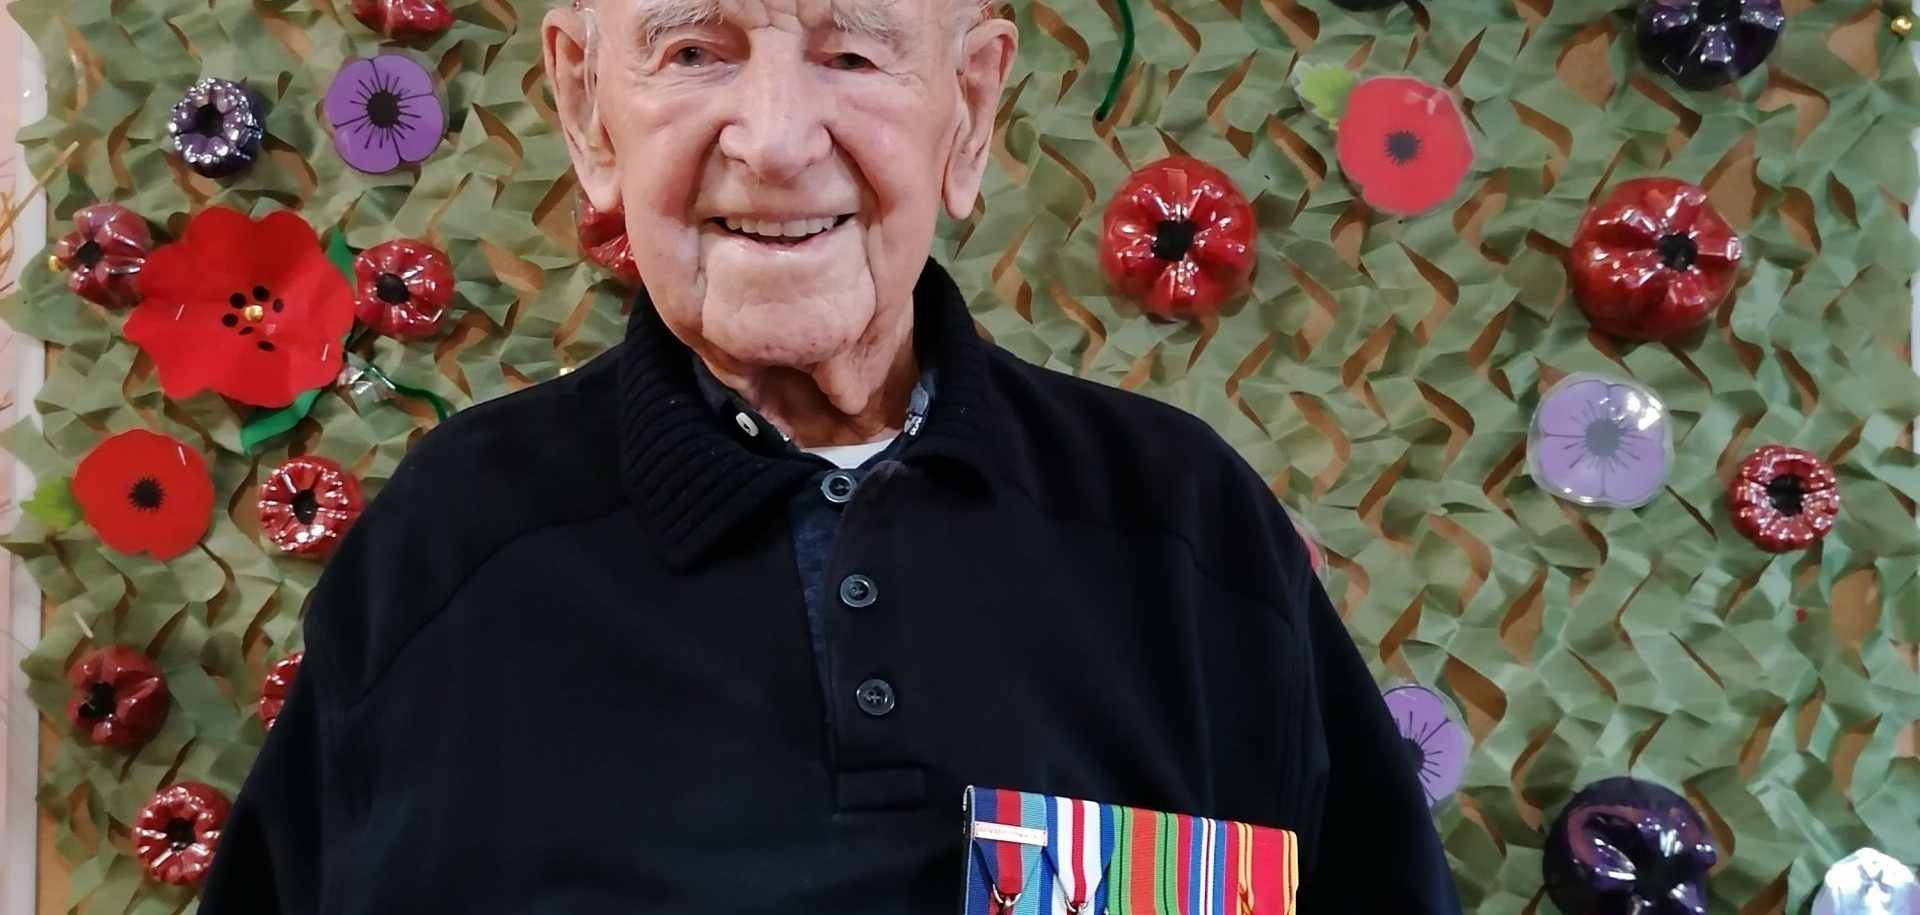 Scarbrough Court resident and WWII veteran Joe Dixon, aged 107, in front of the Home's Remembrance Day display